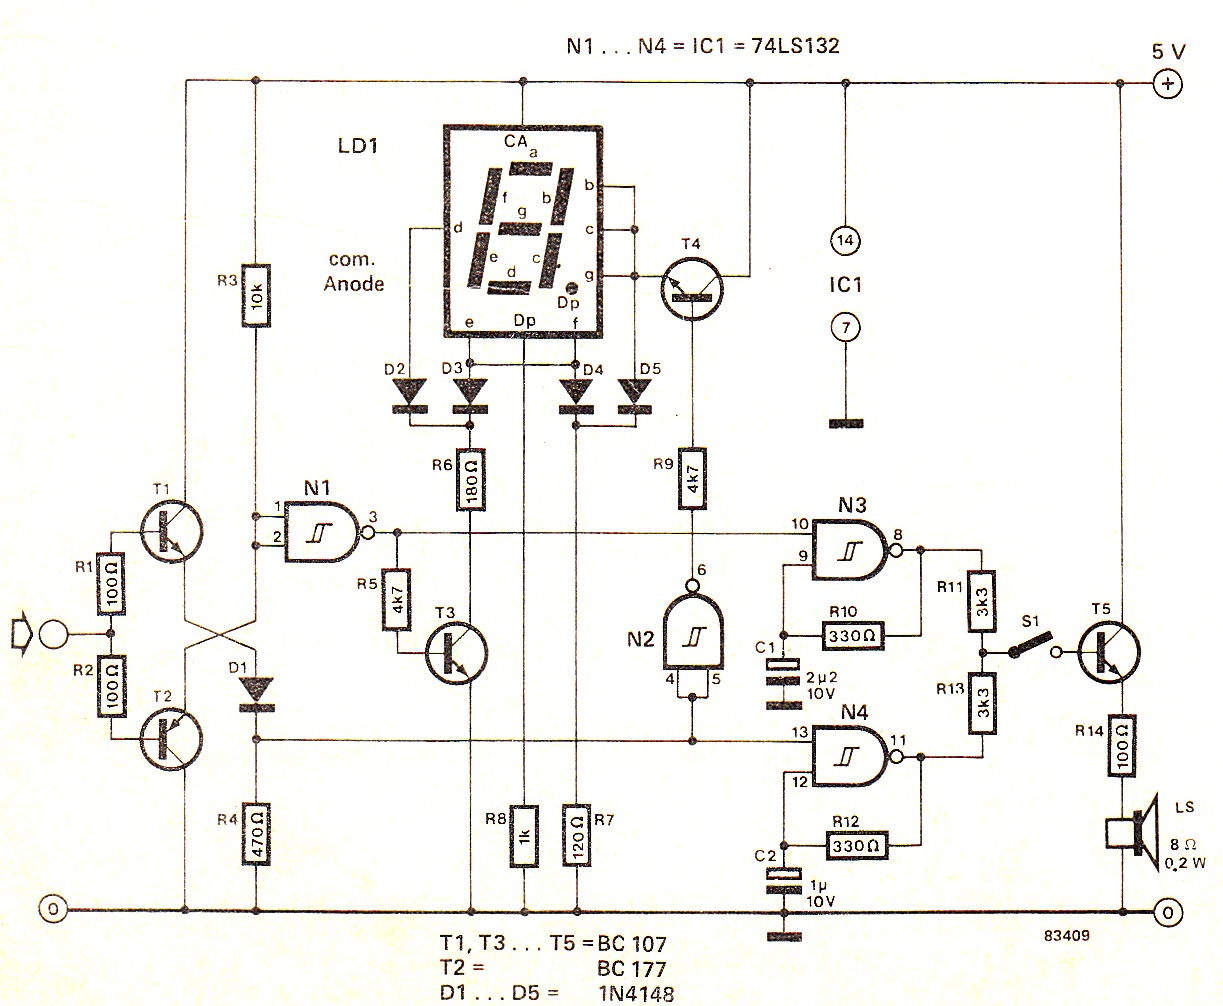 Digital High/Low Logic Tester Circuit diagram